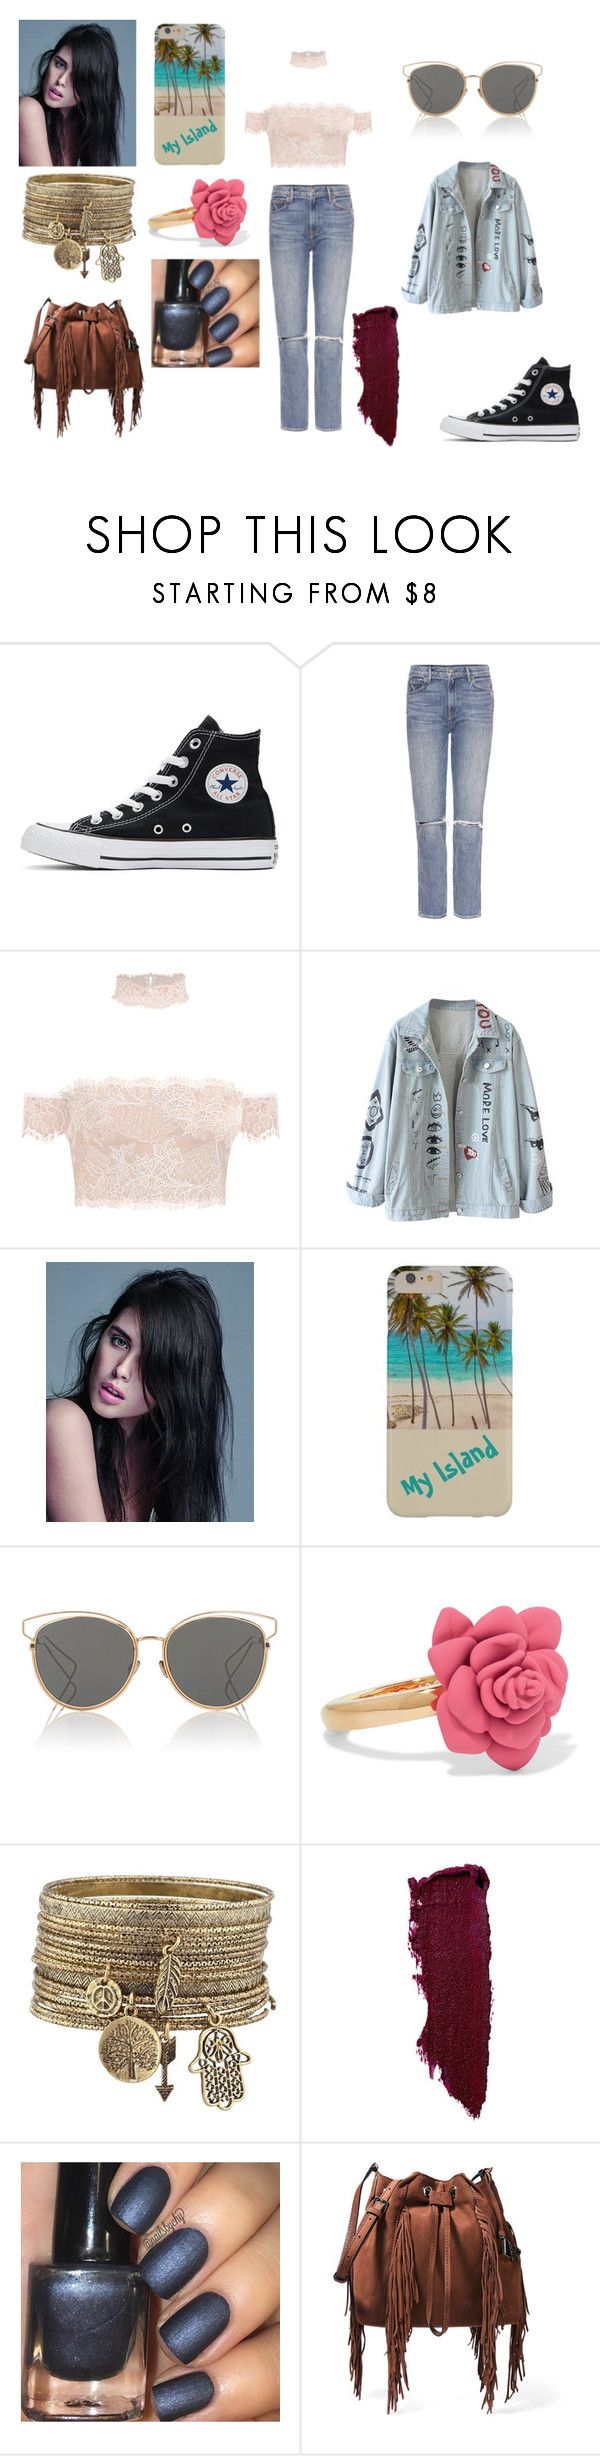 """Sans titre #2364"" by amandine-collet ❤ liked on Polyvore featuring Converse, GRLFRND, Balmain, Christian Dior, Marc by Marc Jacobs and Diane Von Furstenberg"